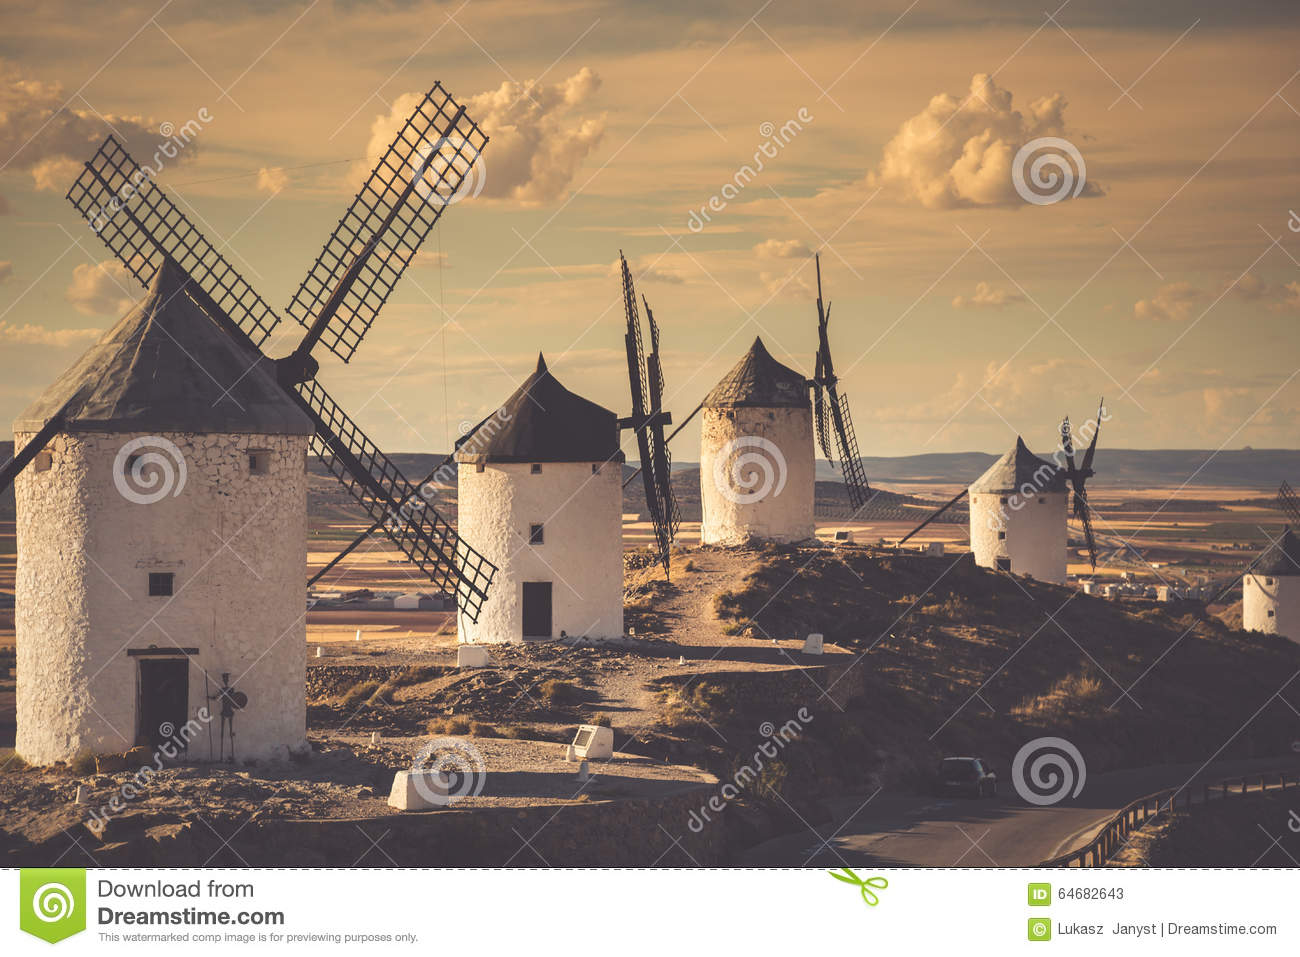 moulins vent de don don quichotte cosuegra espagne image stock image du pouvoir nuage. Black Bedroom Furniture Sets. Home Design Ideas